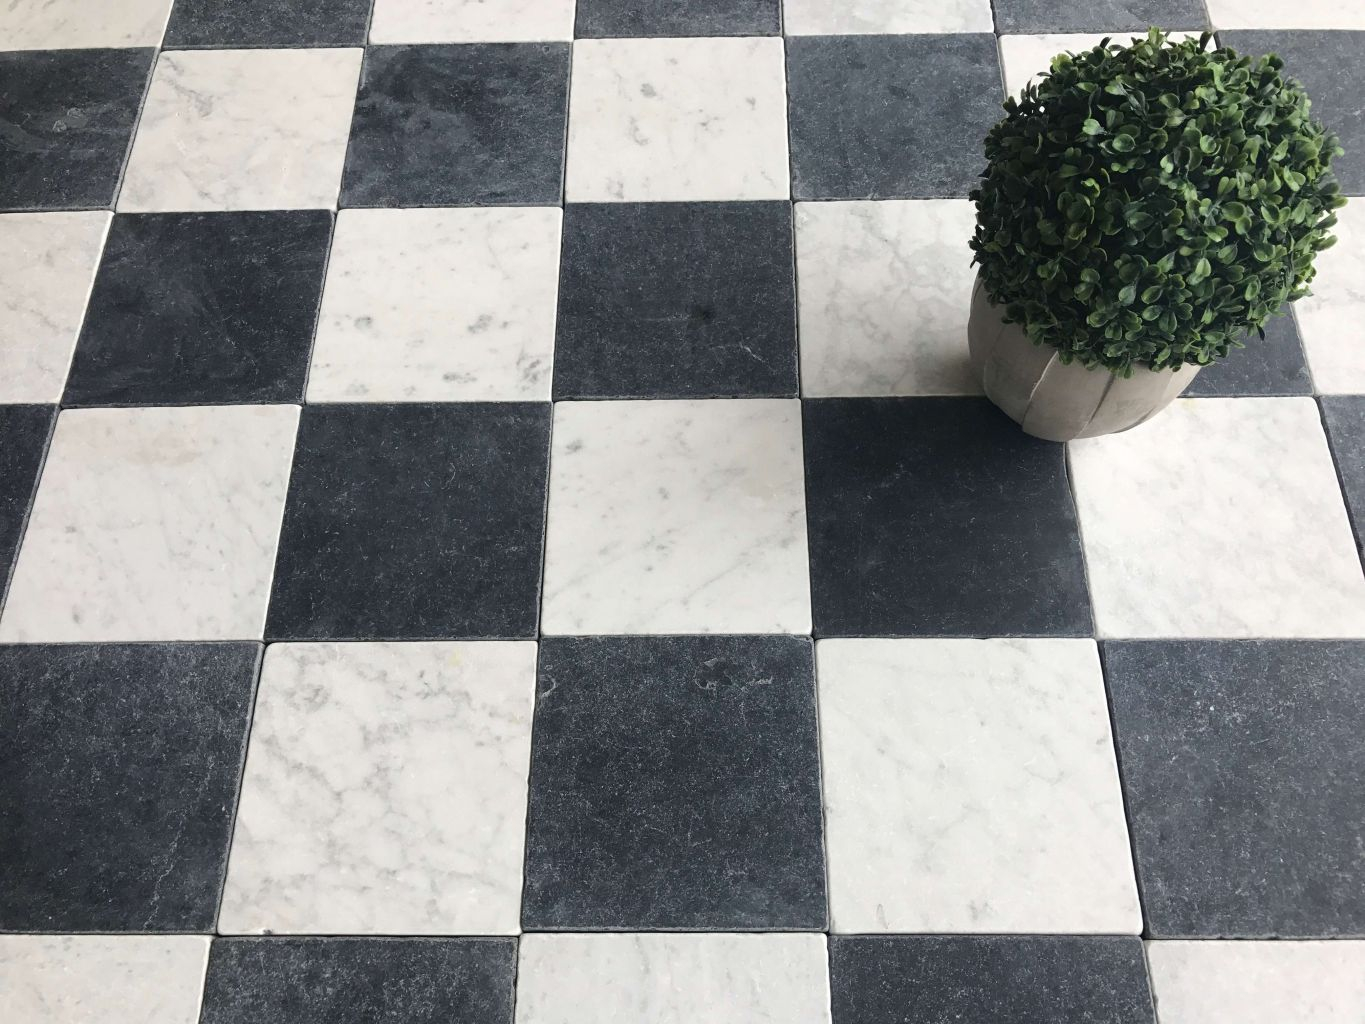 Carrelage Damier Noir Et Blanc 30x30 Classic Marble In Black and White Check